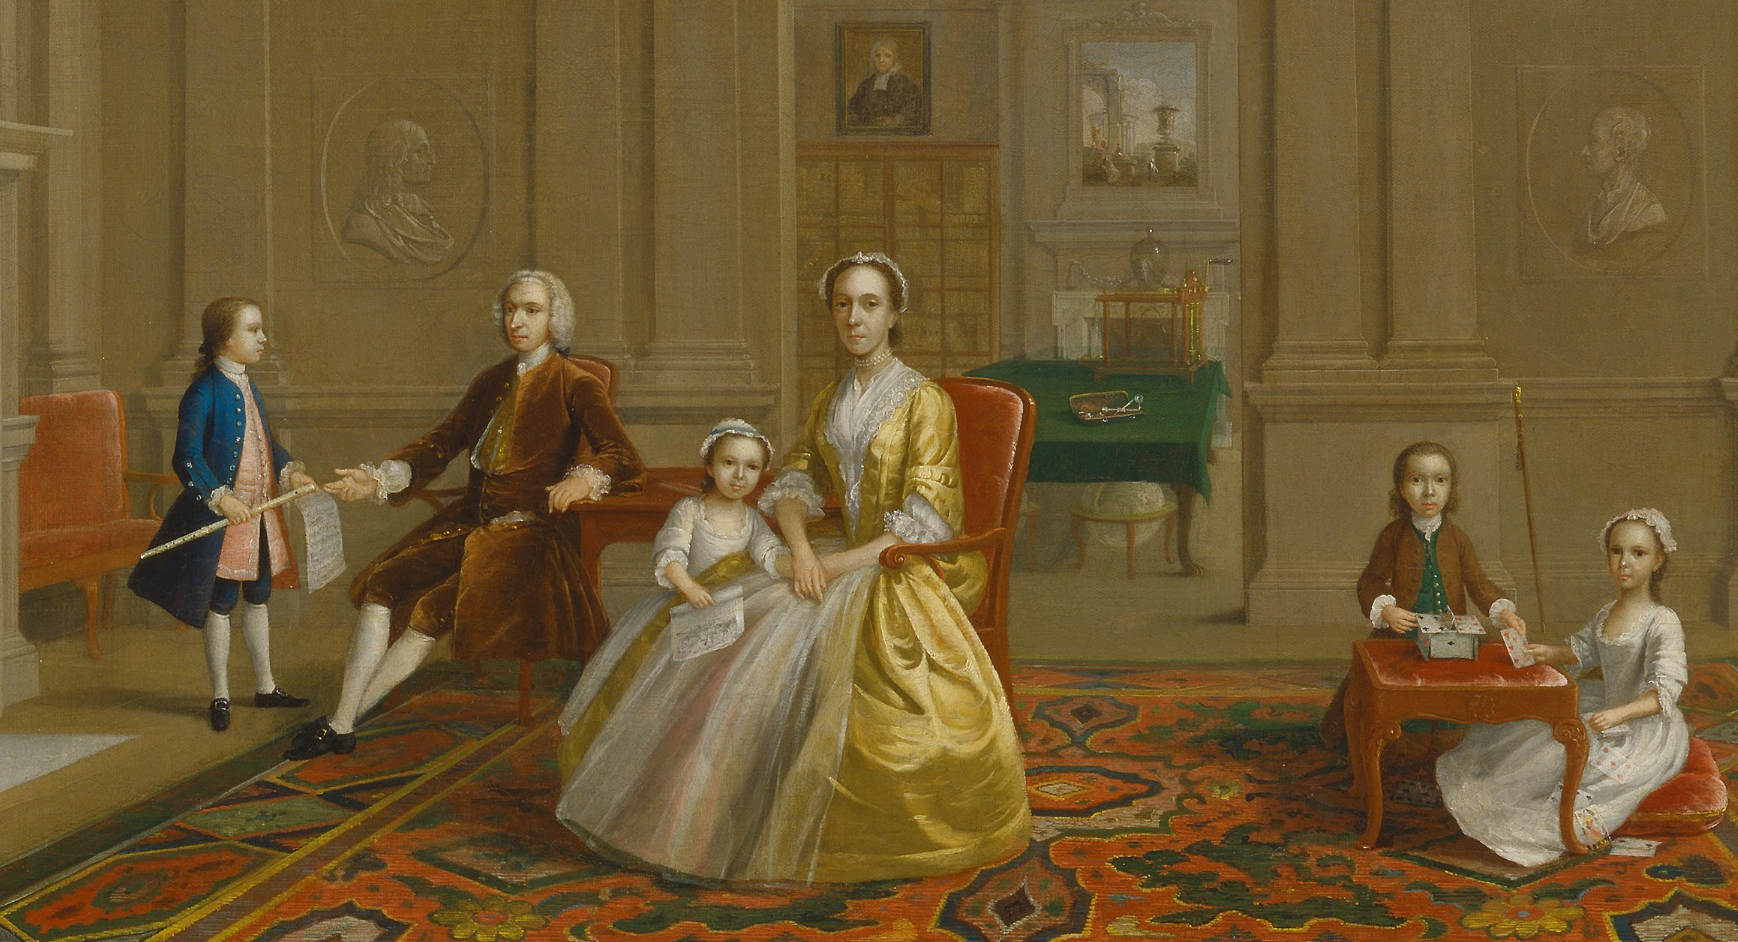 1742-1743 John Bacon family by Arthur Devis (Yale Center for British Art -  New Haven, Connecticut USA) close up